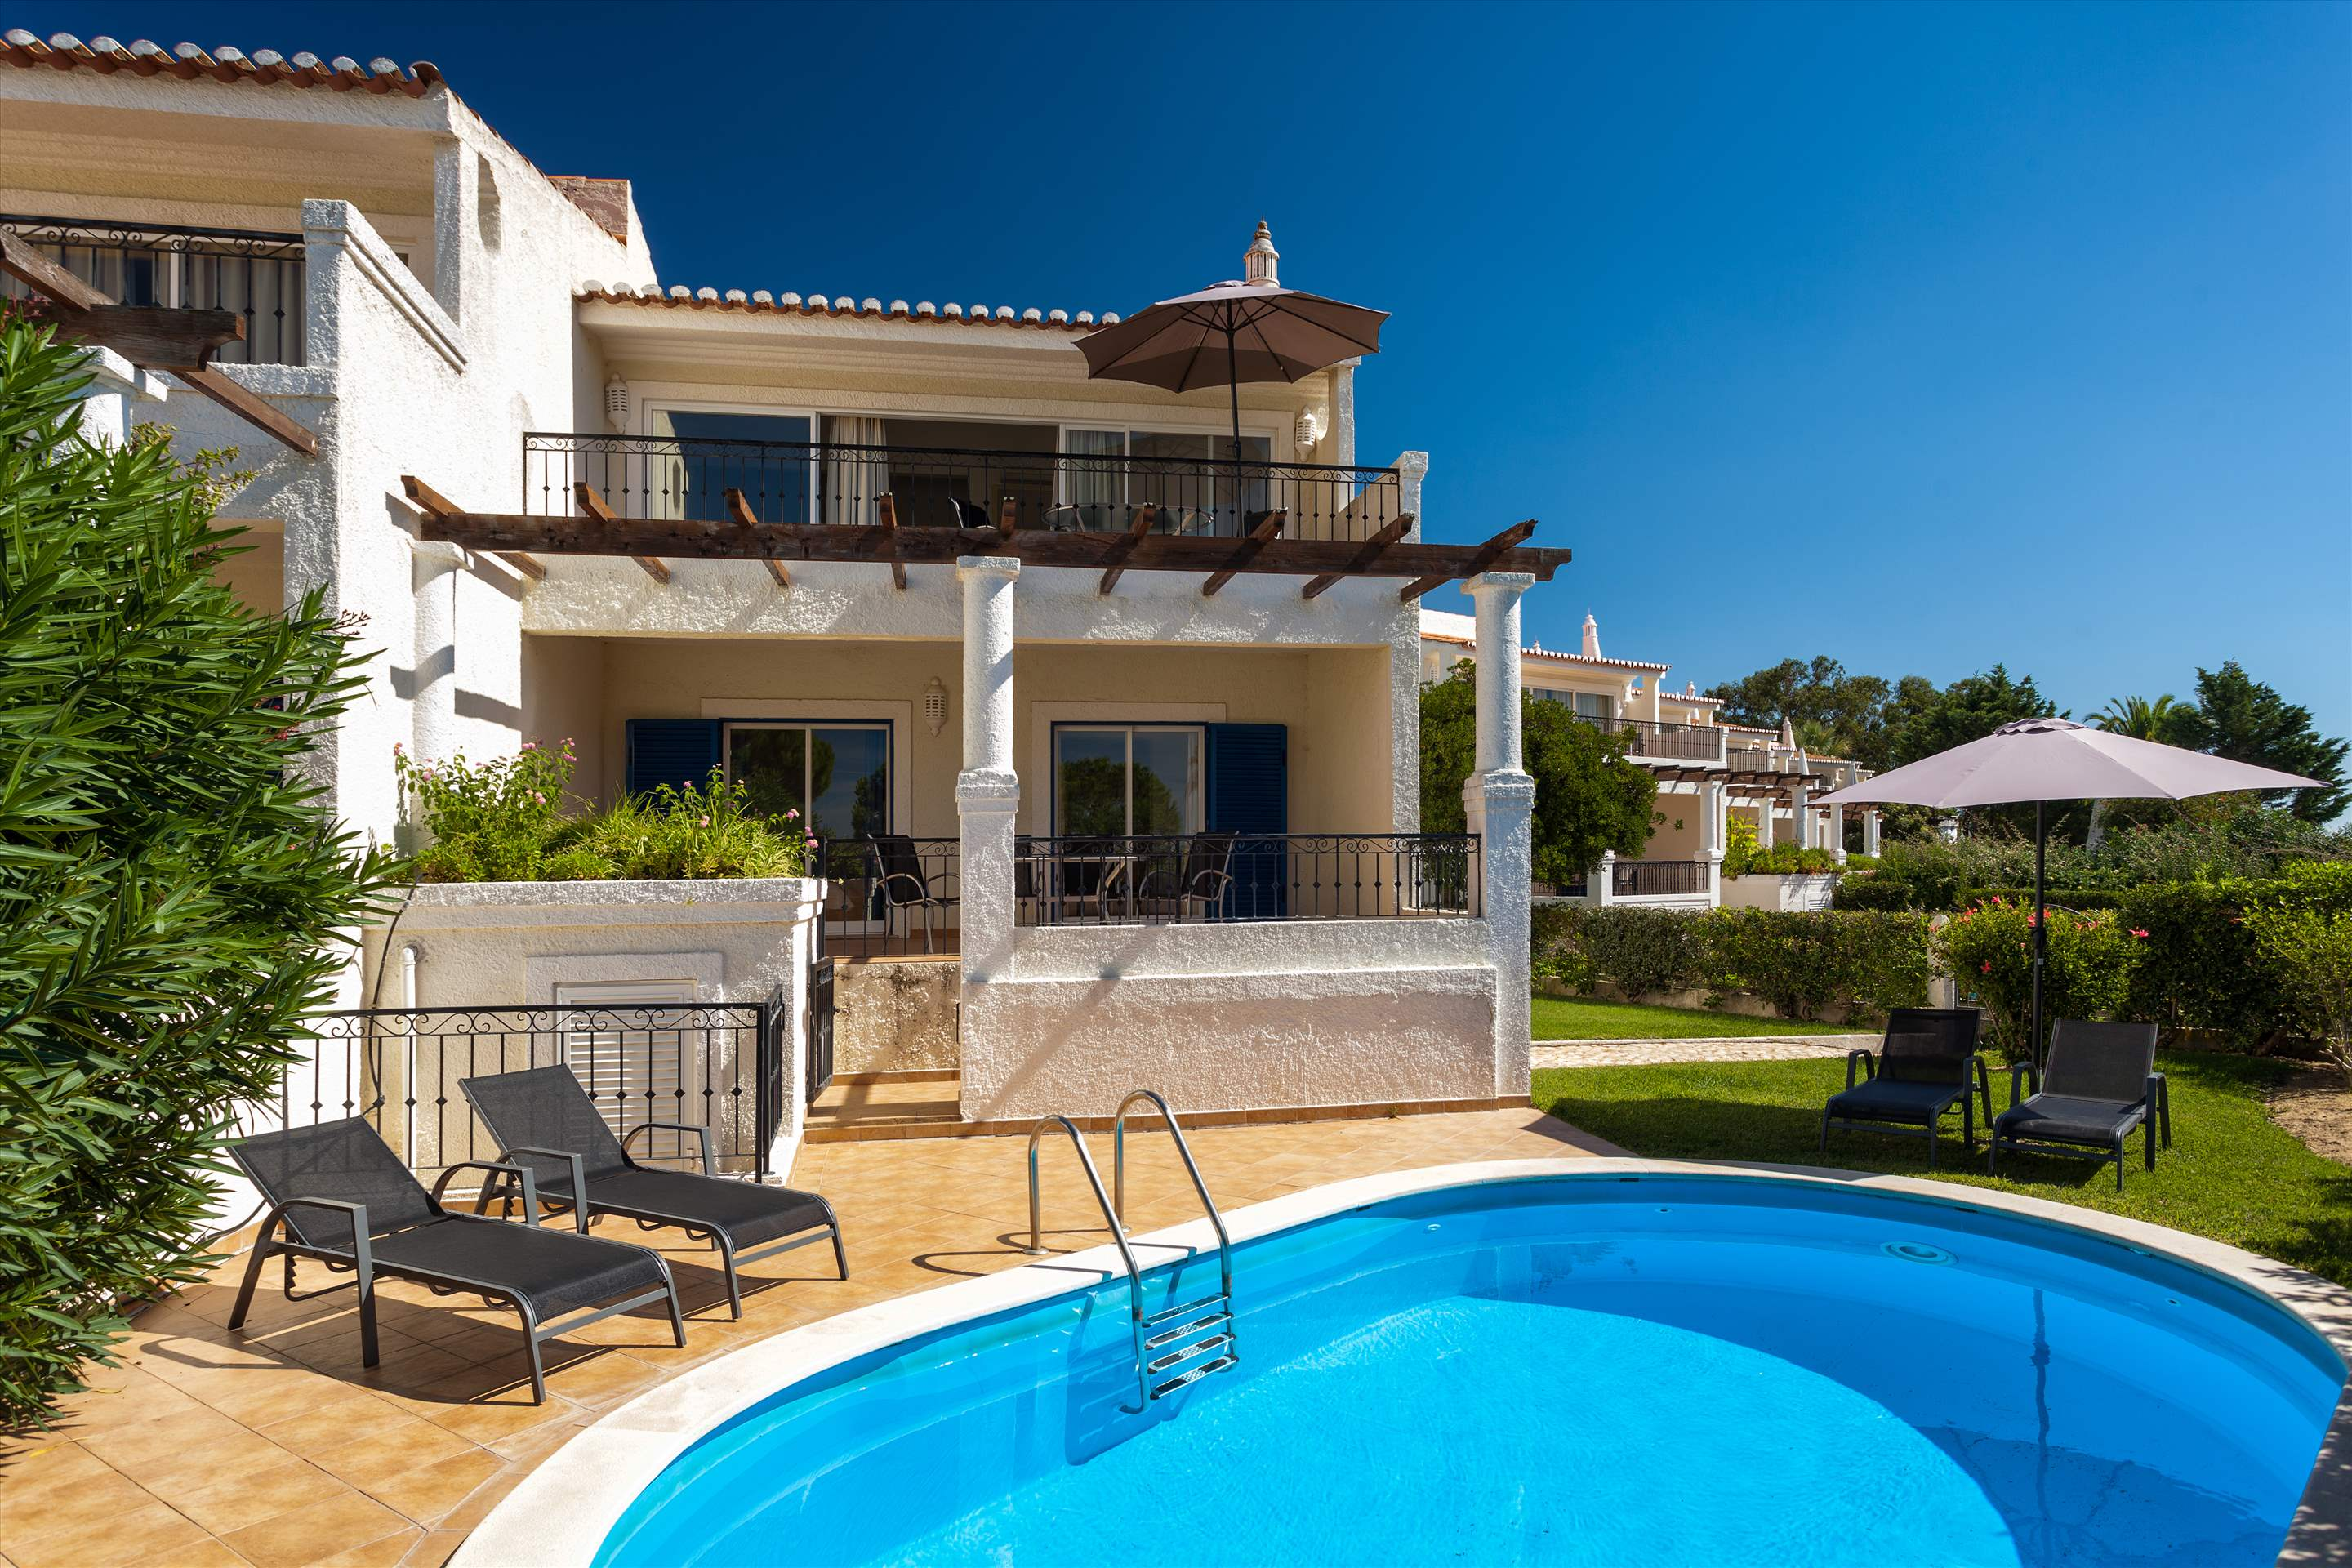 Villa Marisol, 3 bedroom villa in Vale do Lobo, Algarve